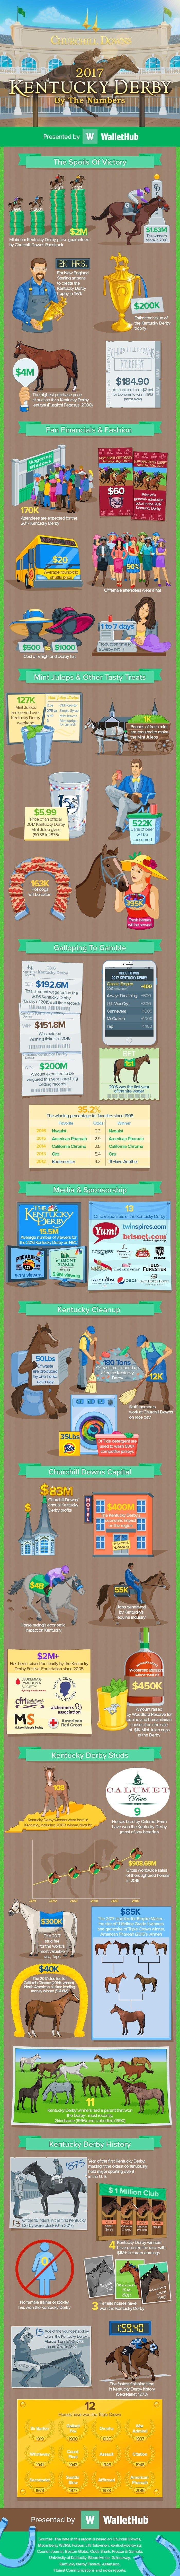 2017-kentucky-derby-by-the-numbers-v5_opt